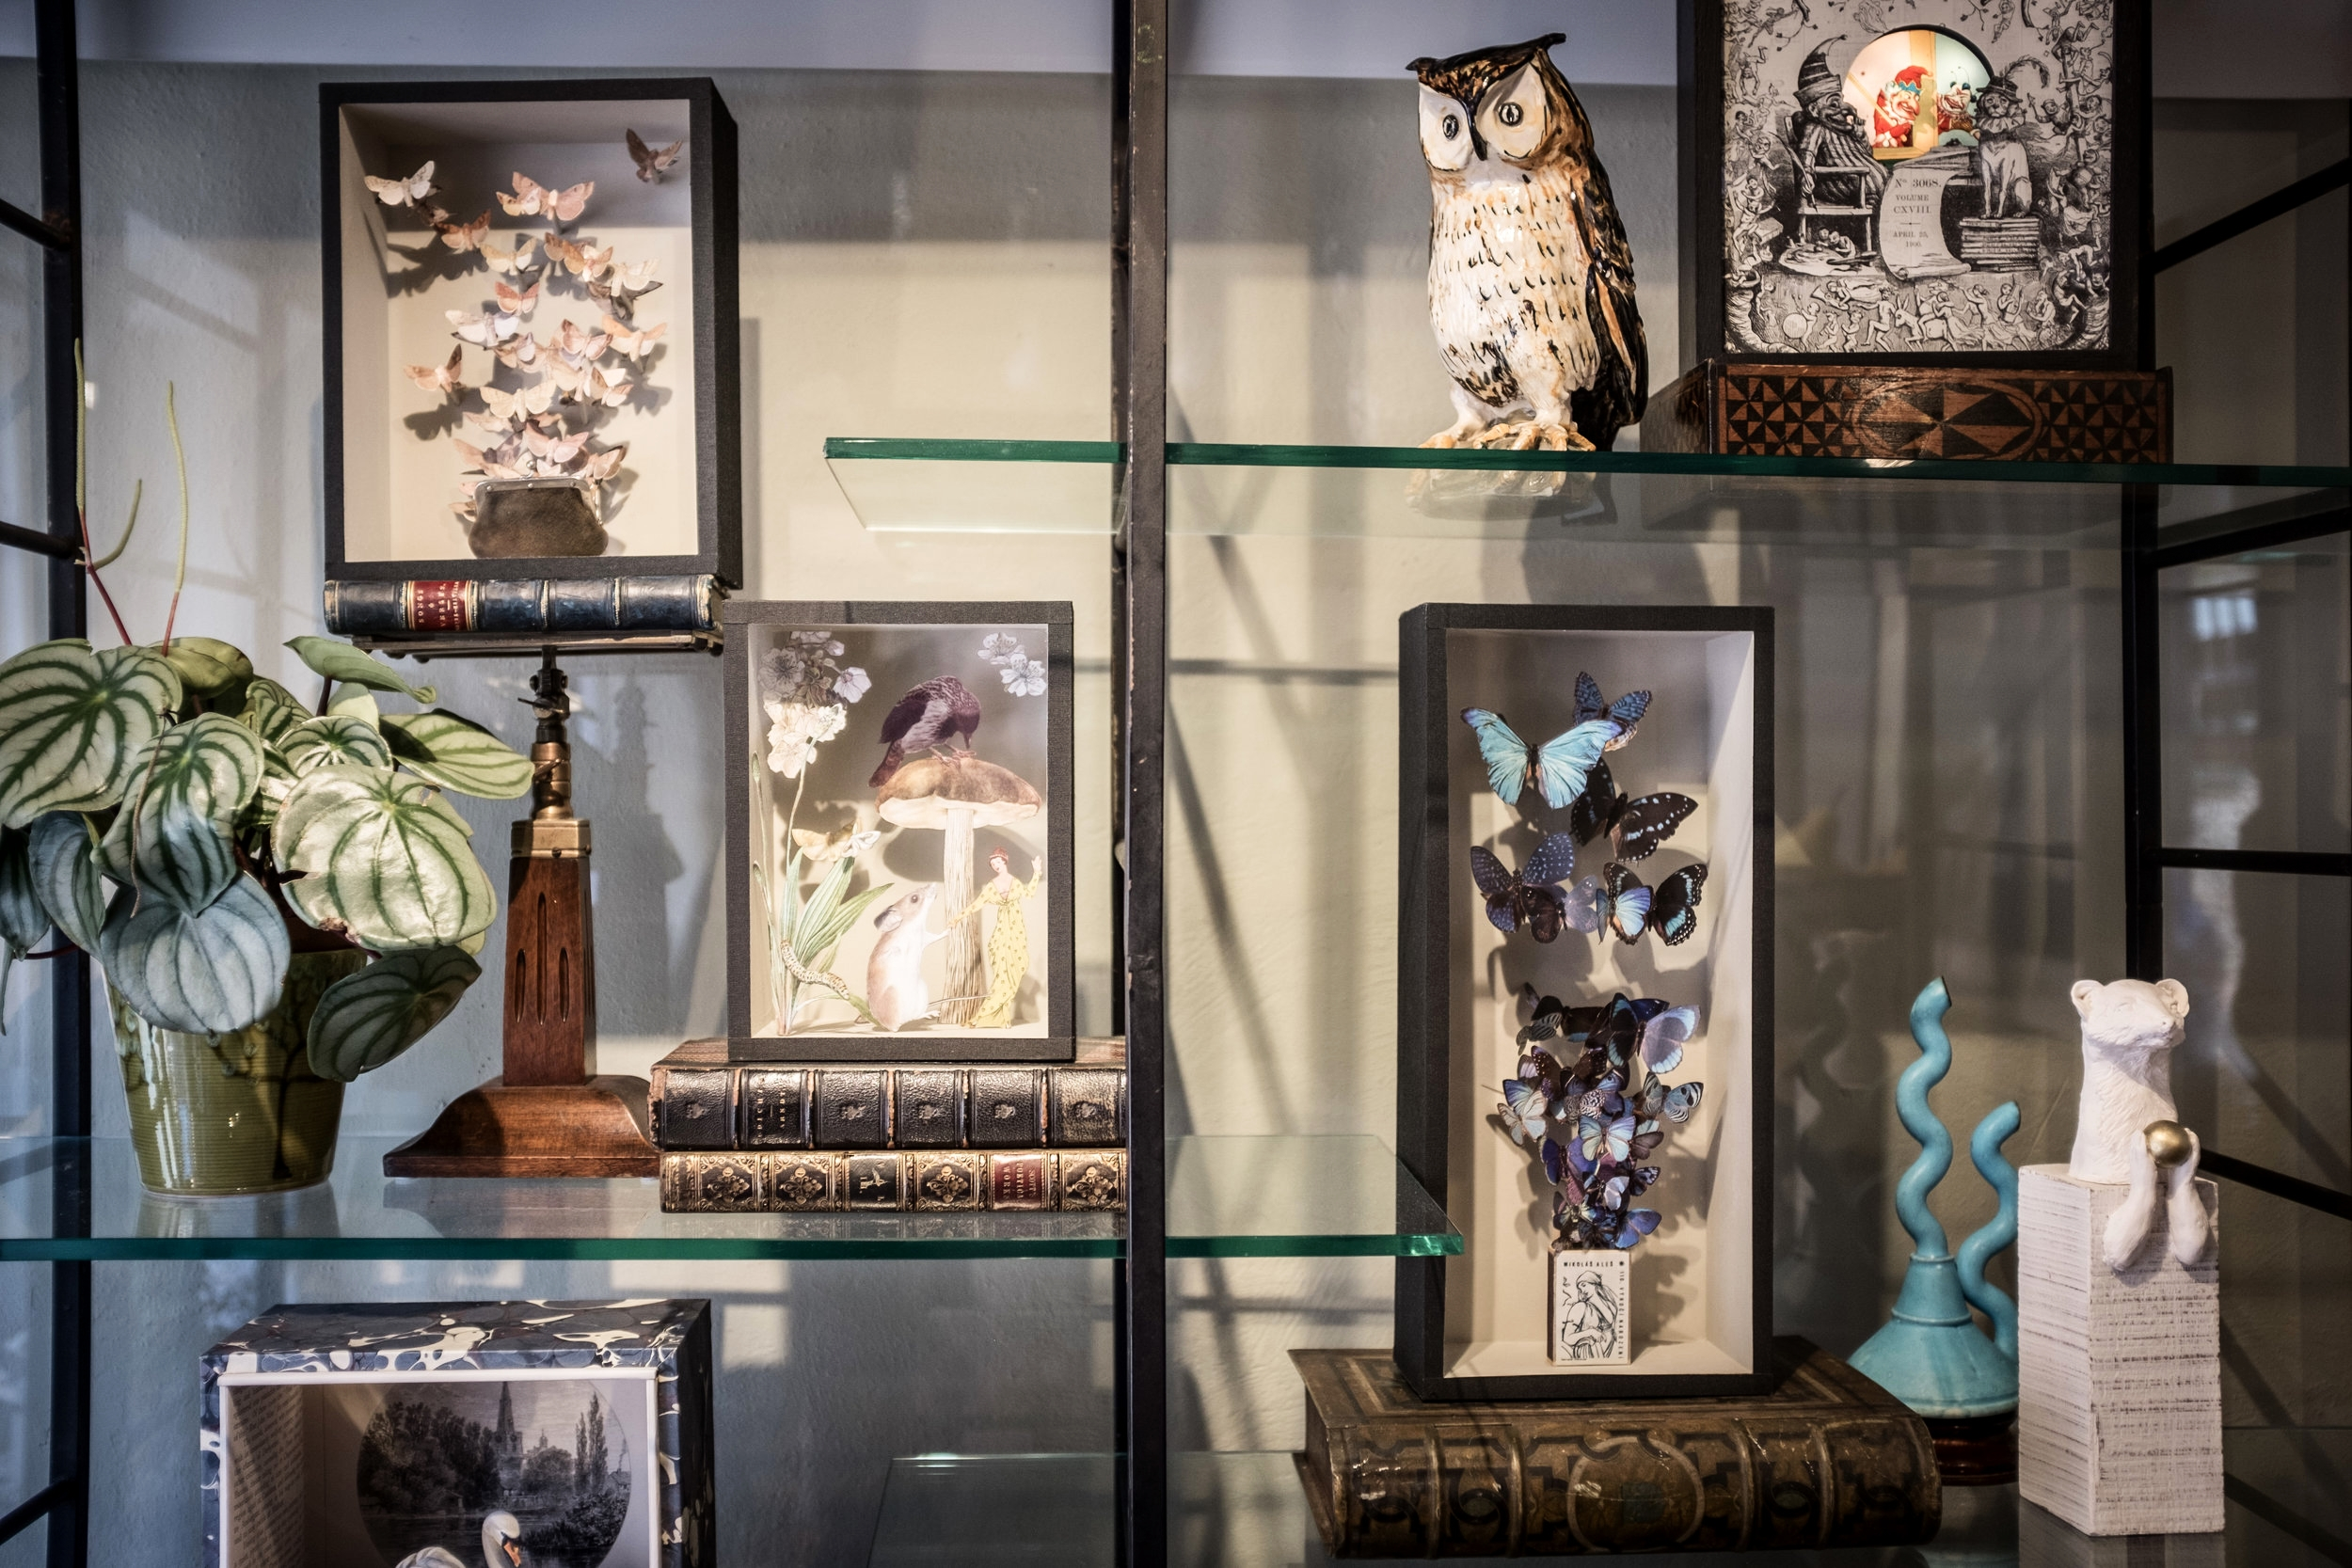 A collection of Nikki Ward boxes ... Moths & Leather Purse, Butterflies & Matchbox and Vignette. Stoat by James Fenner. Punch light box and Swan Lake by Amanda Lawrence Studio. Vintage ceramic owl and abstract pot. All displayed in a vintage (2nd half of 20th C.) glass and metal shelf.